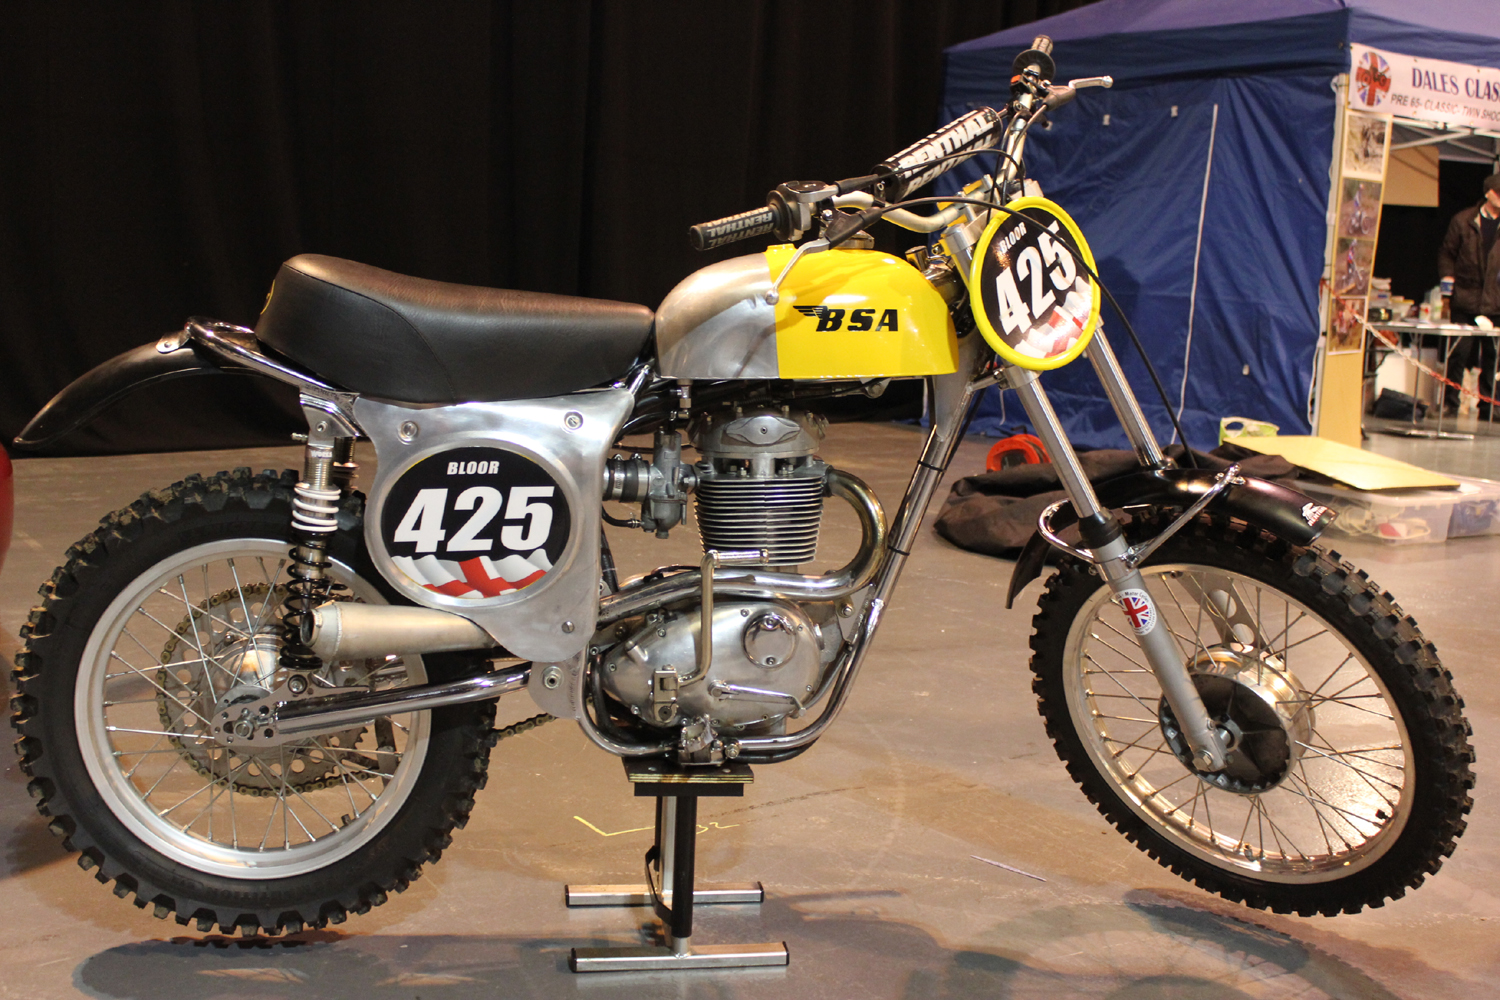 classicdirtbikerider.com-photo by Mr J-2015 Telford classic dirt bike show-BSA B44